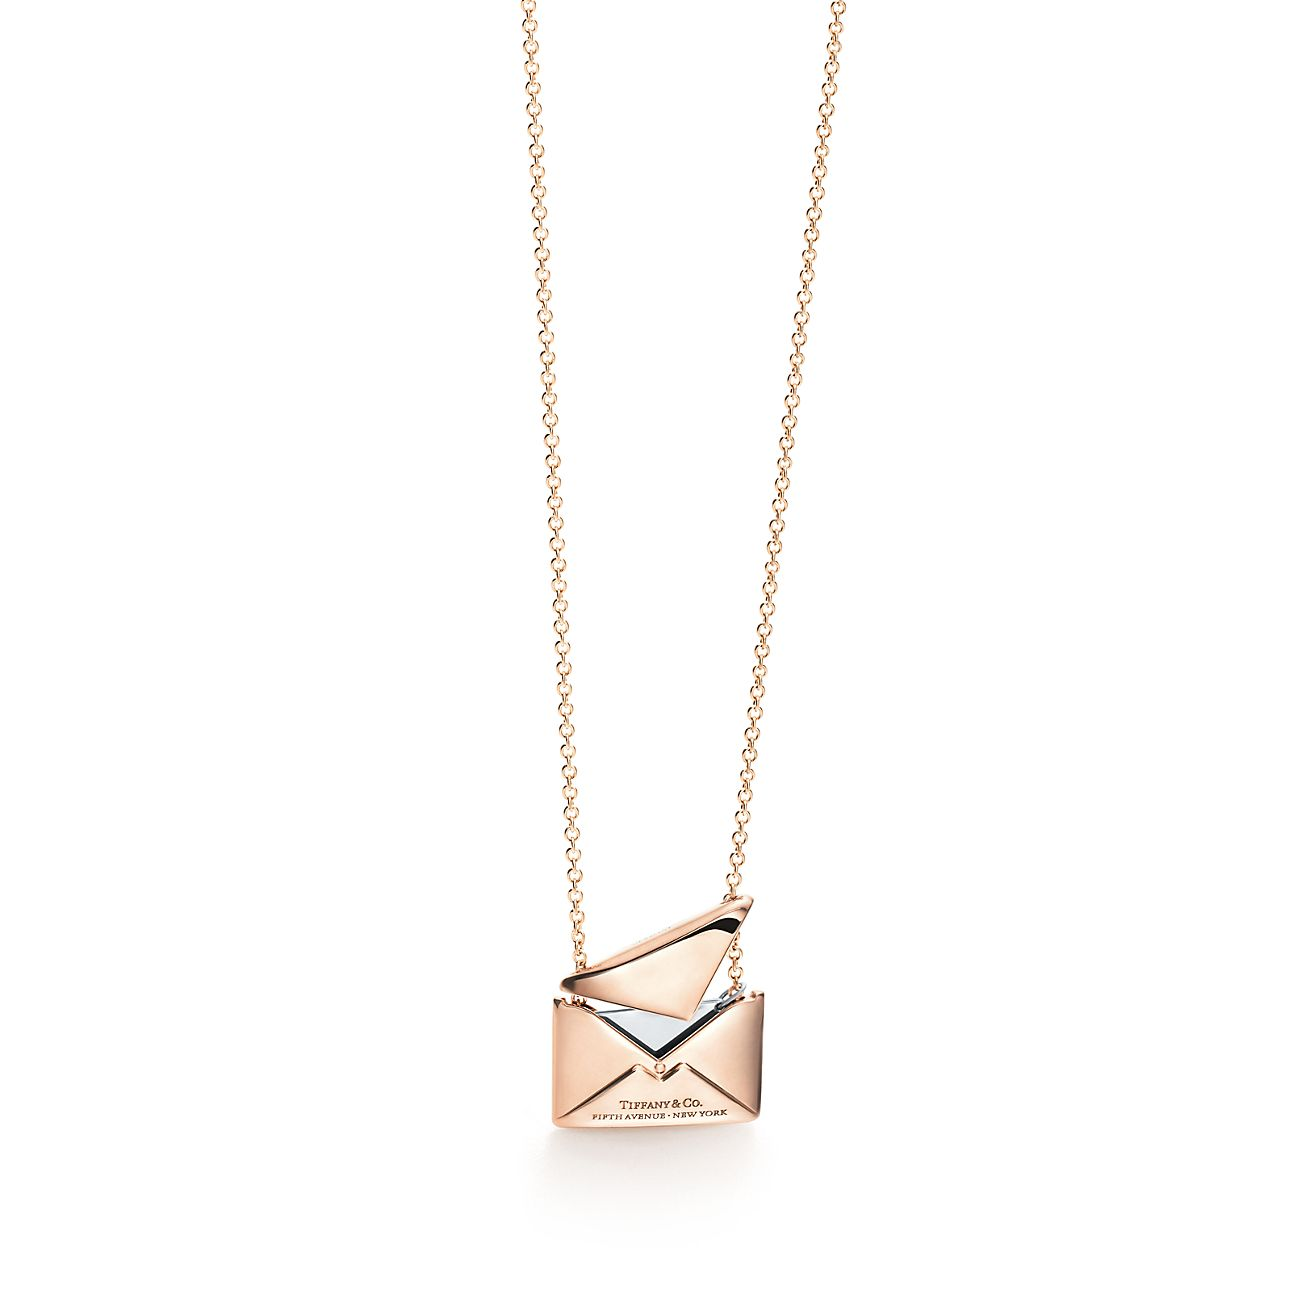 Amazing tiffany necklace initial pendant amazing tiffany necklace initial pendant tiffany charms sweet nothings love letter pendant in 18k rose gold aloadofball Gallery